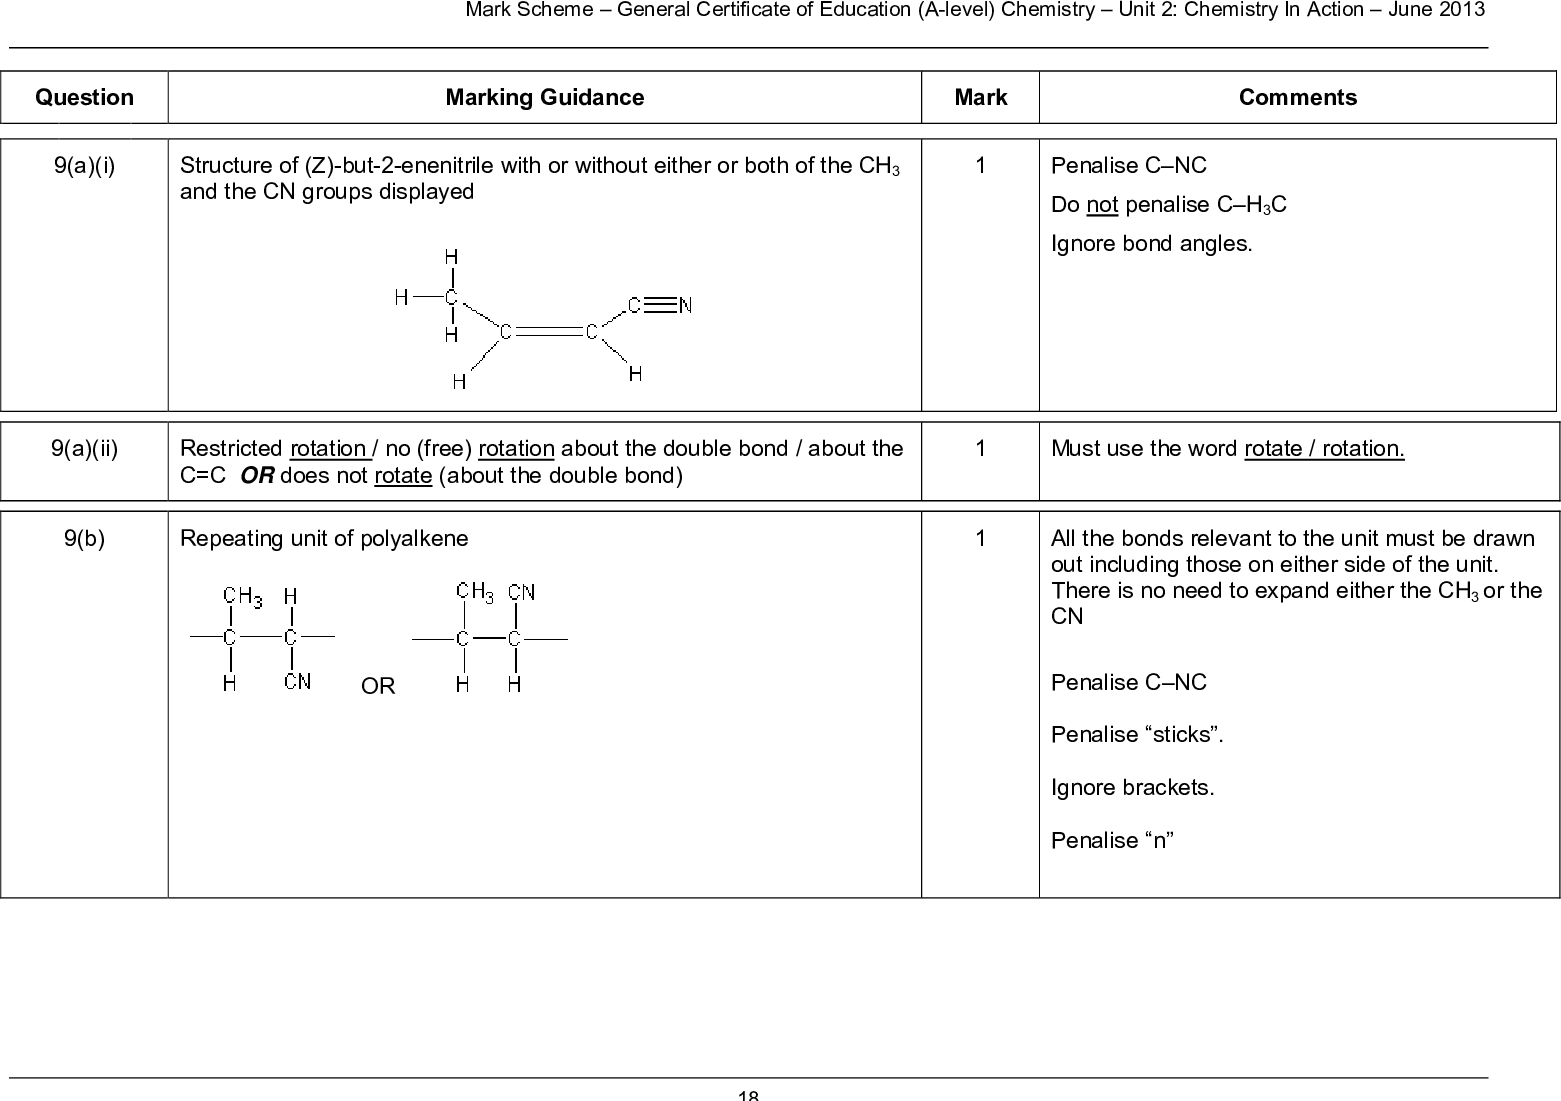 mark scheme general certificate of education a level chemistry unit chemistry in action june question a i marking guidance structure of z but enenitrile with or without either or both of the ch and the cn groups displayed mark comments penalise c nc do not penalise c h c ignore bond angles a ii b restricted rotation no free rotation about the double bond about the c c or does not rotate about the double bond repeating unit of polyalkene or must use the word rotate rotation all the bonds relevant to the unit must be drawn out including those on either side of the unit there is no need to expand either the ch or the cn penalise c nc penalise sticks ignore brackets penalise n mark scheme general certificate of education a level chemistry unit chemistry in action june c feature absorption peak in the range to cm or specified value in this range or marked correctly on spectrum and characteristic absorption peak for c n cn group nitrile cyanide group feature absorption peak in the range to cm or specified value in this range or marked correctly on spectrum and characteristic absorption peak for c c group alkene carbon carbon double bond allow the words dip or spike or trough or low transmittance as alternatives for absorption allow a peak at cm to cm in this case ignore reference to other absorptions eg c h either order